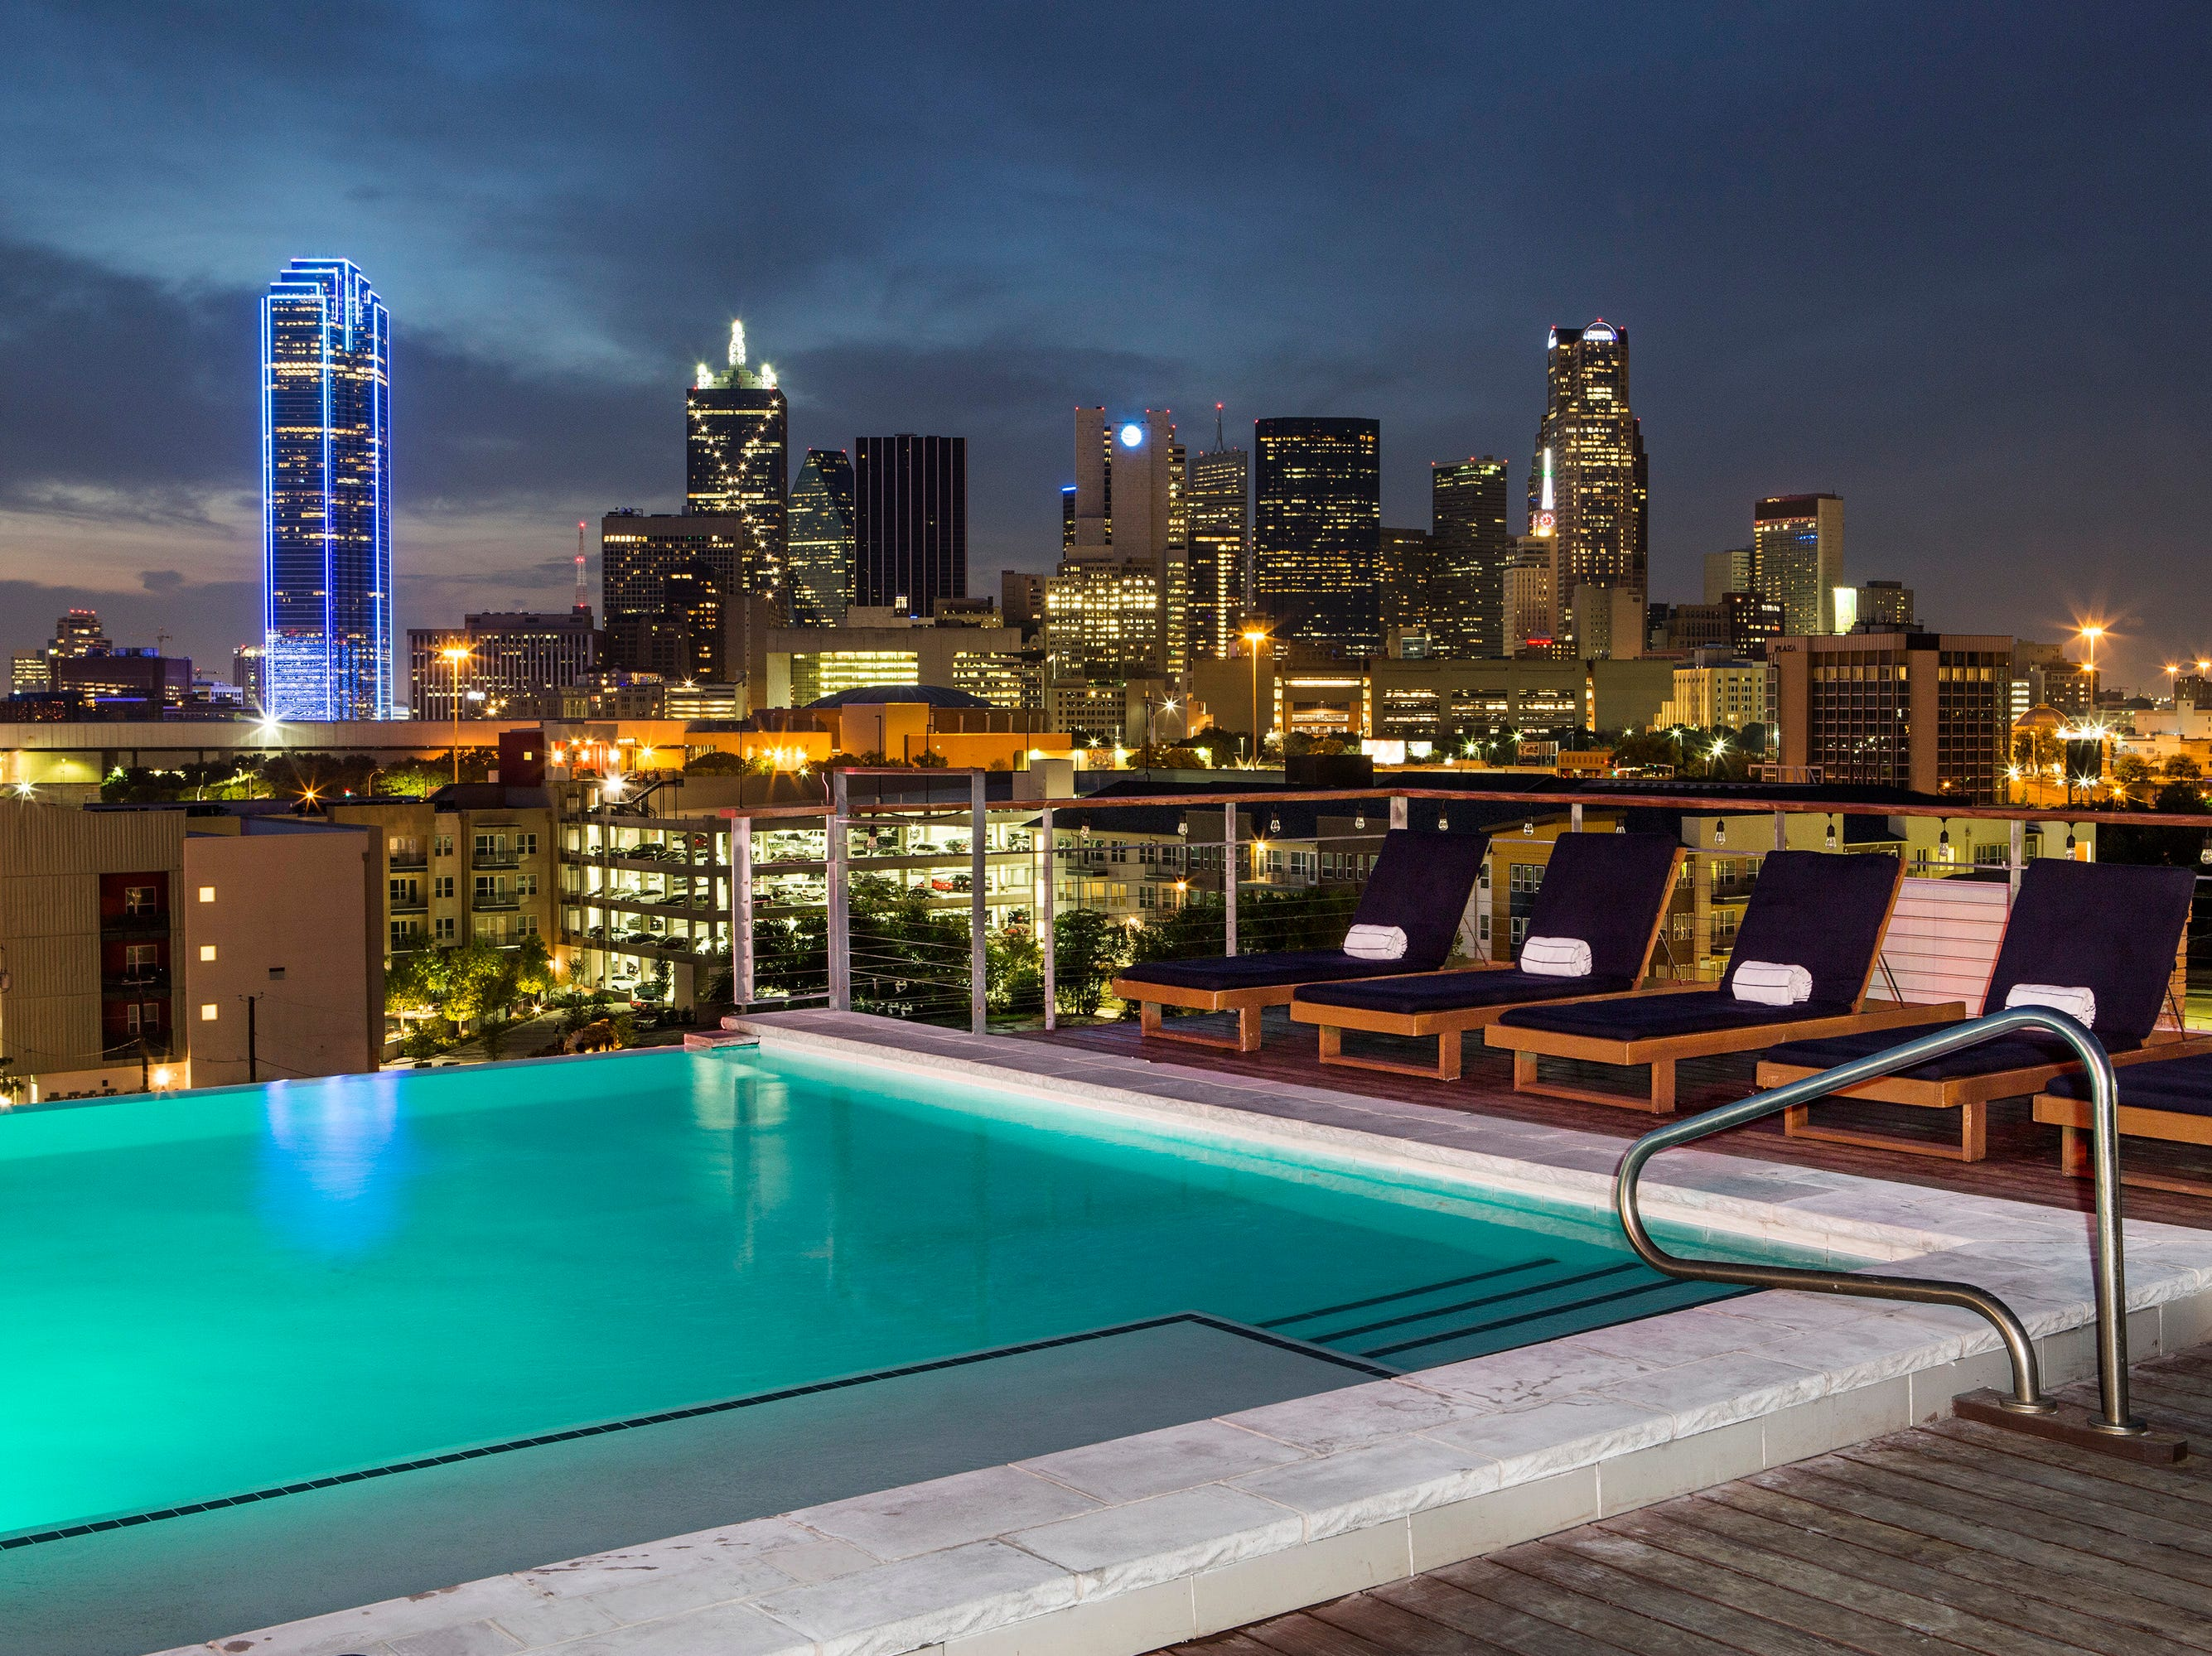 The rooftop bar at the CANVAS Hotel Dallas, formerly known as SODA, has been redesigned and renamed The Gallery Rooftop Lounge. The indoor / outdoor lounge has a 270-degree view of the Dallas skyline.